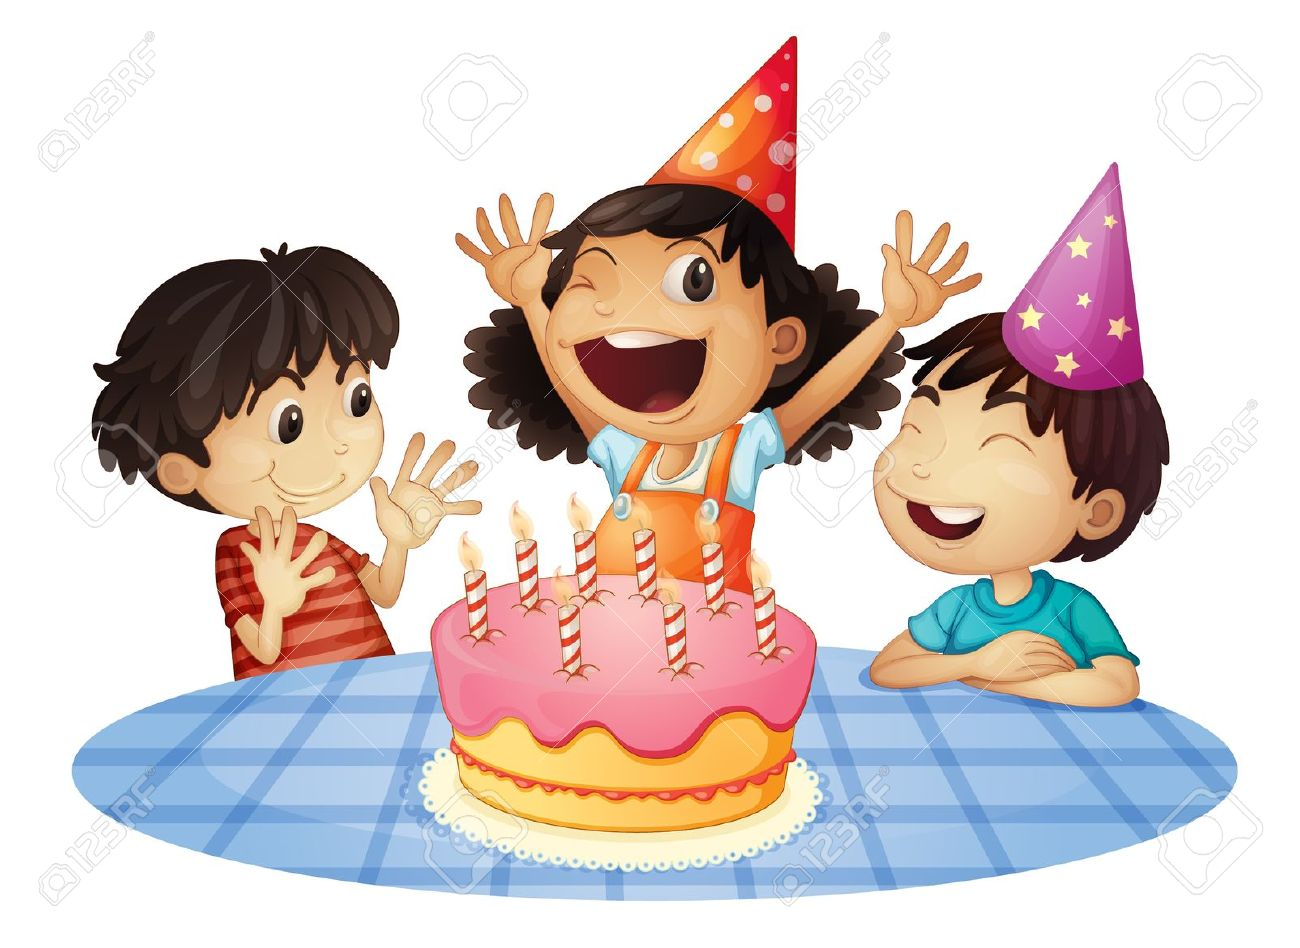 birthday party clipart free ; birthday-party-clip-art-images-9